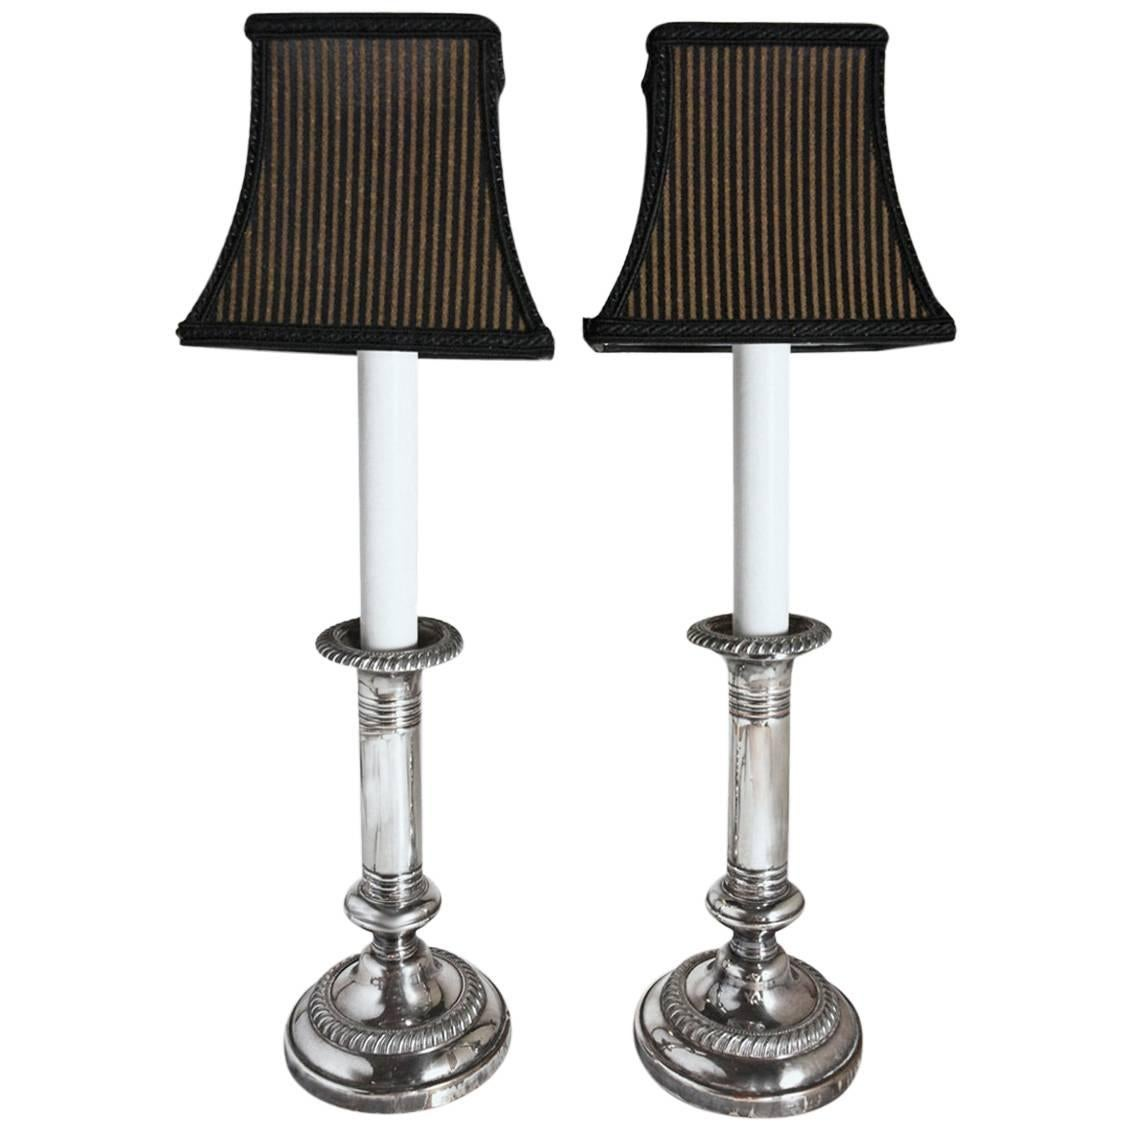 Pair of Antique Silver Plated Electrified Candlesticks Lamps with Shades